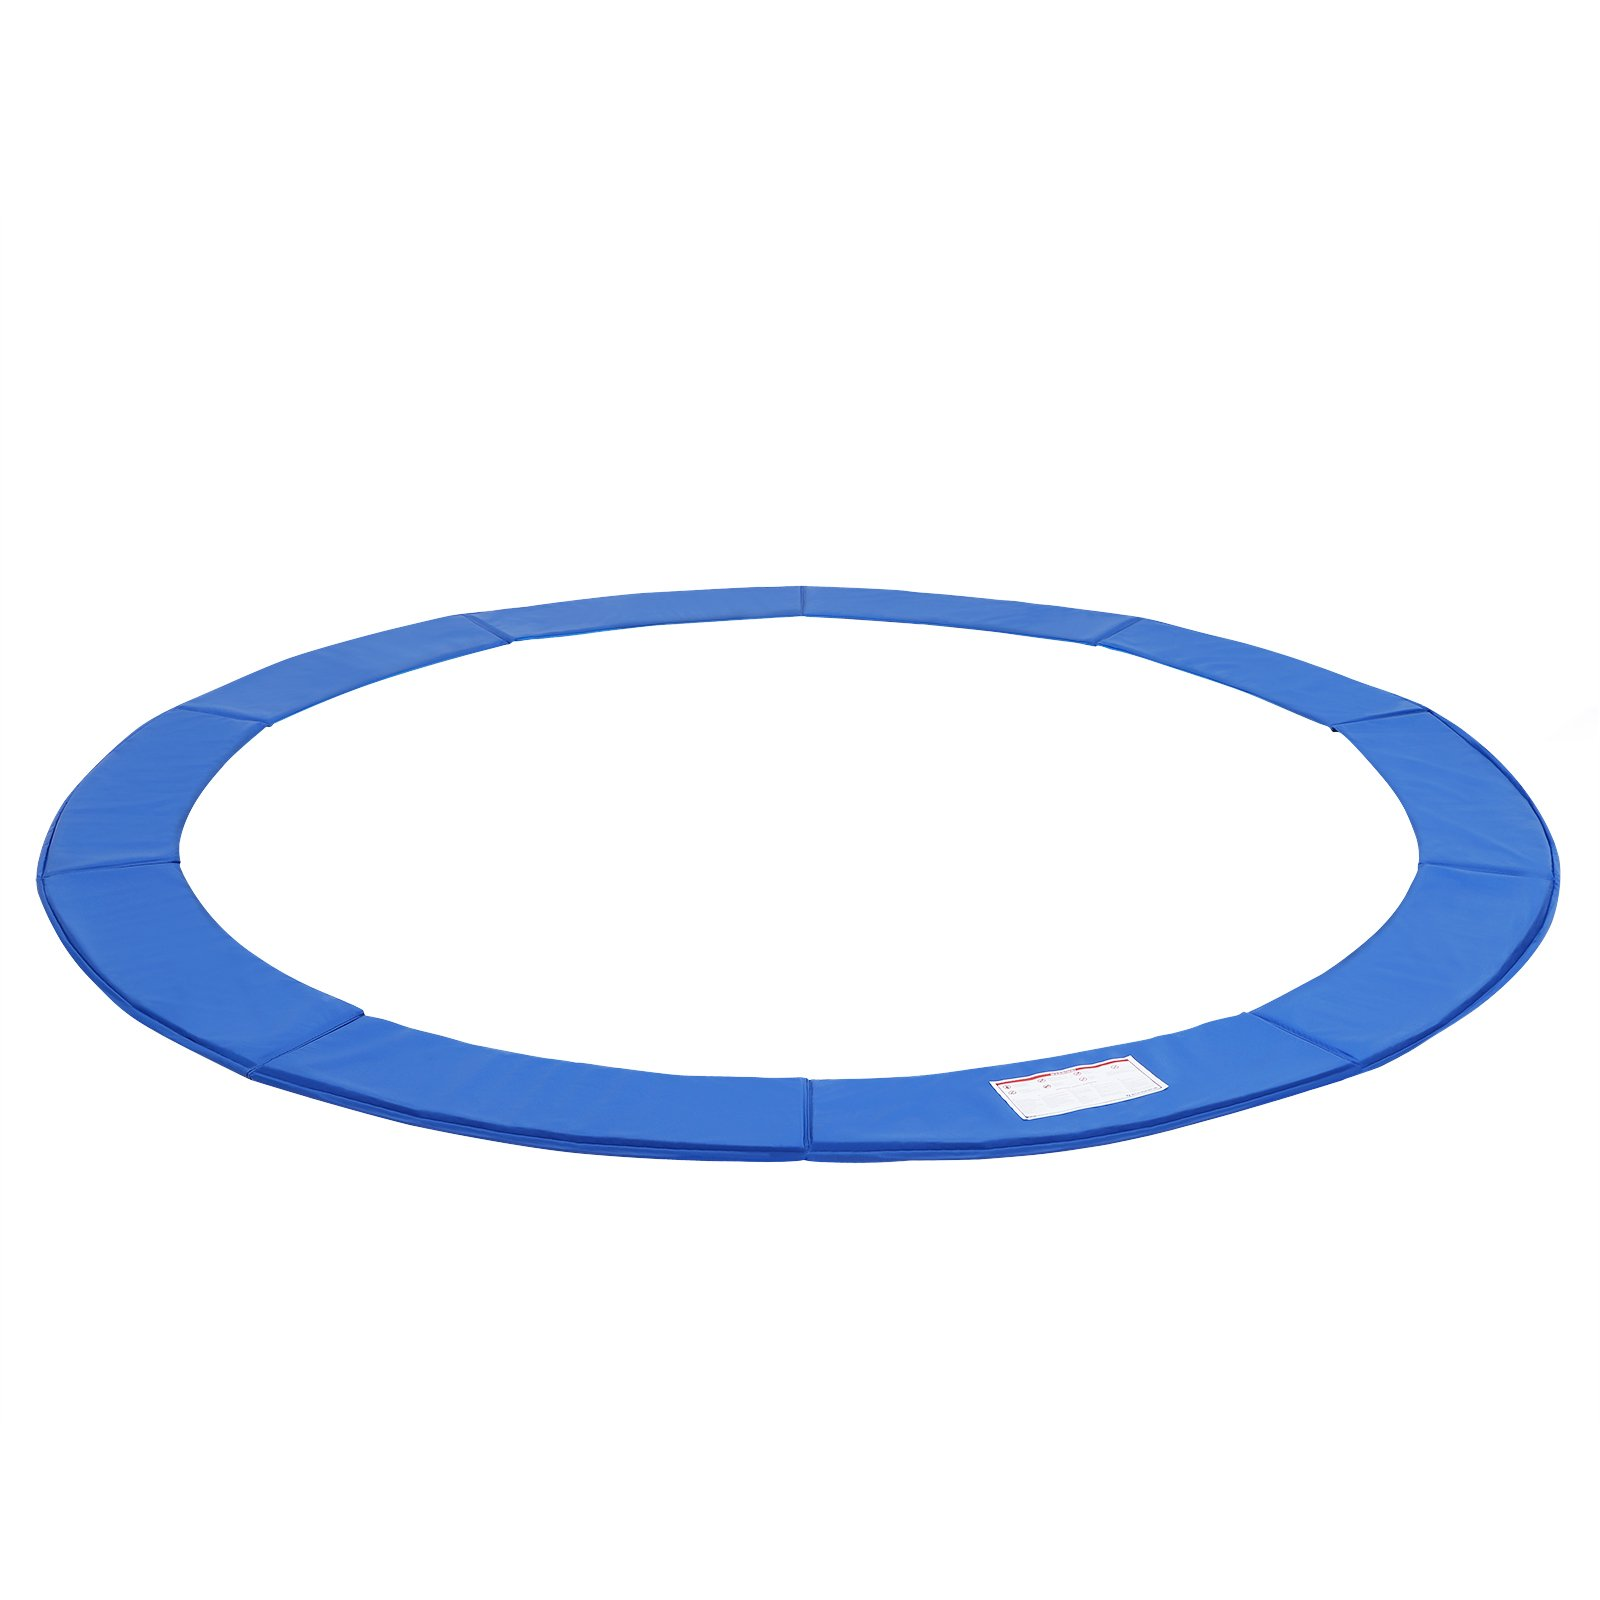 SONGMICS 12FT Replacement Trampoline Safety Pad, Waterproof Surround Spring Cover, Round Foam Pad Blue USTP12FT